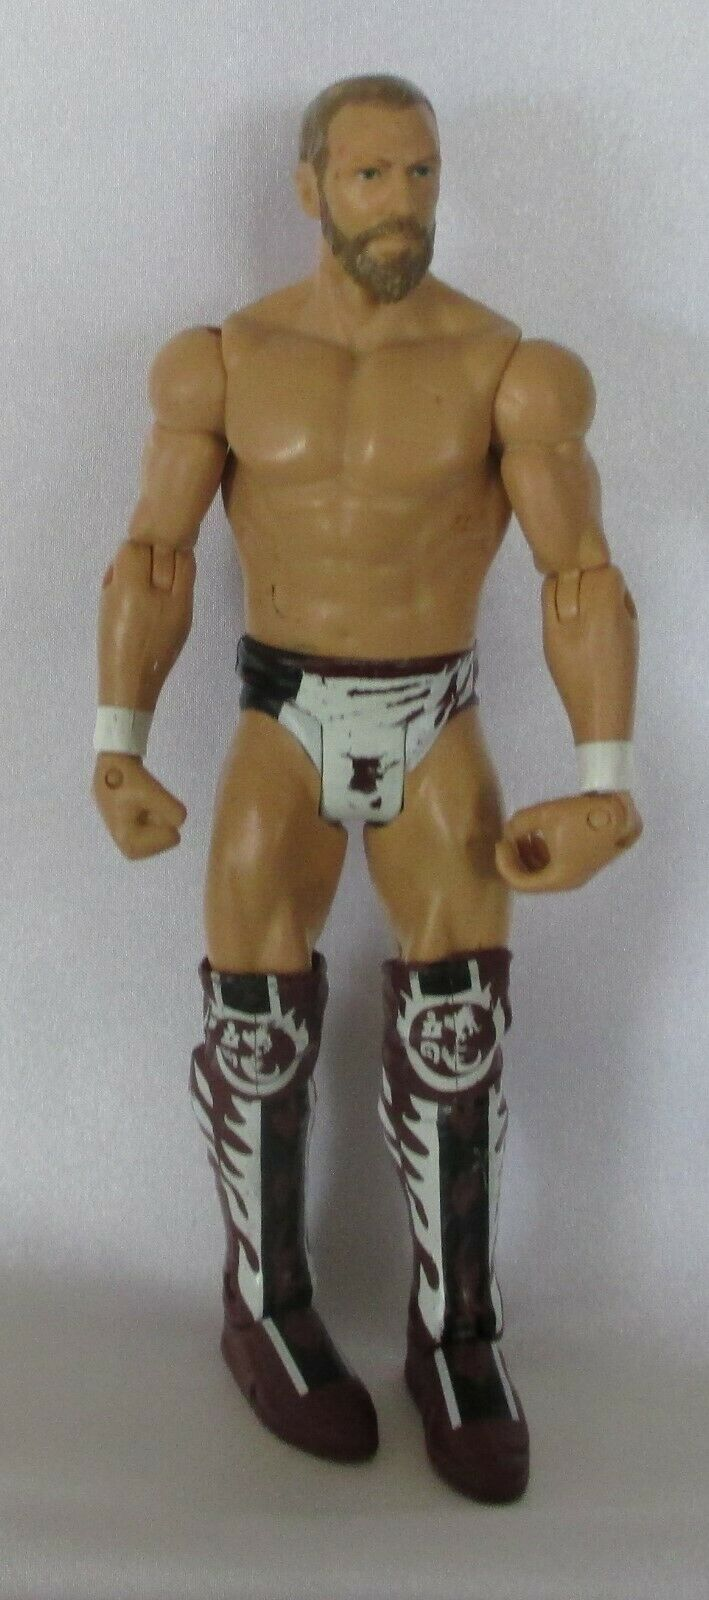 LOT of 50+ WWE, WCW, WWF Wresting Figurines. Preowned USED. USED. USED. Selling 4 Grandson c1f219